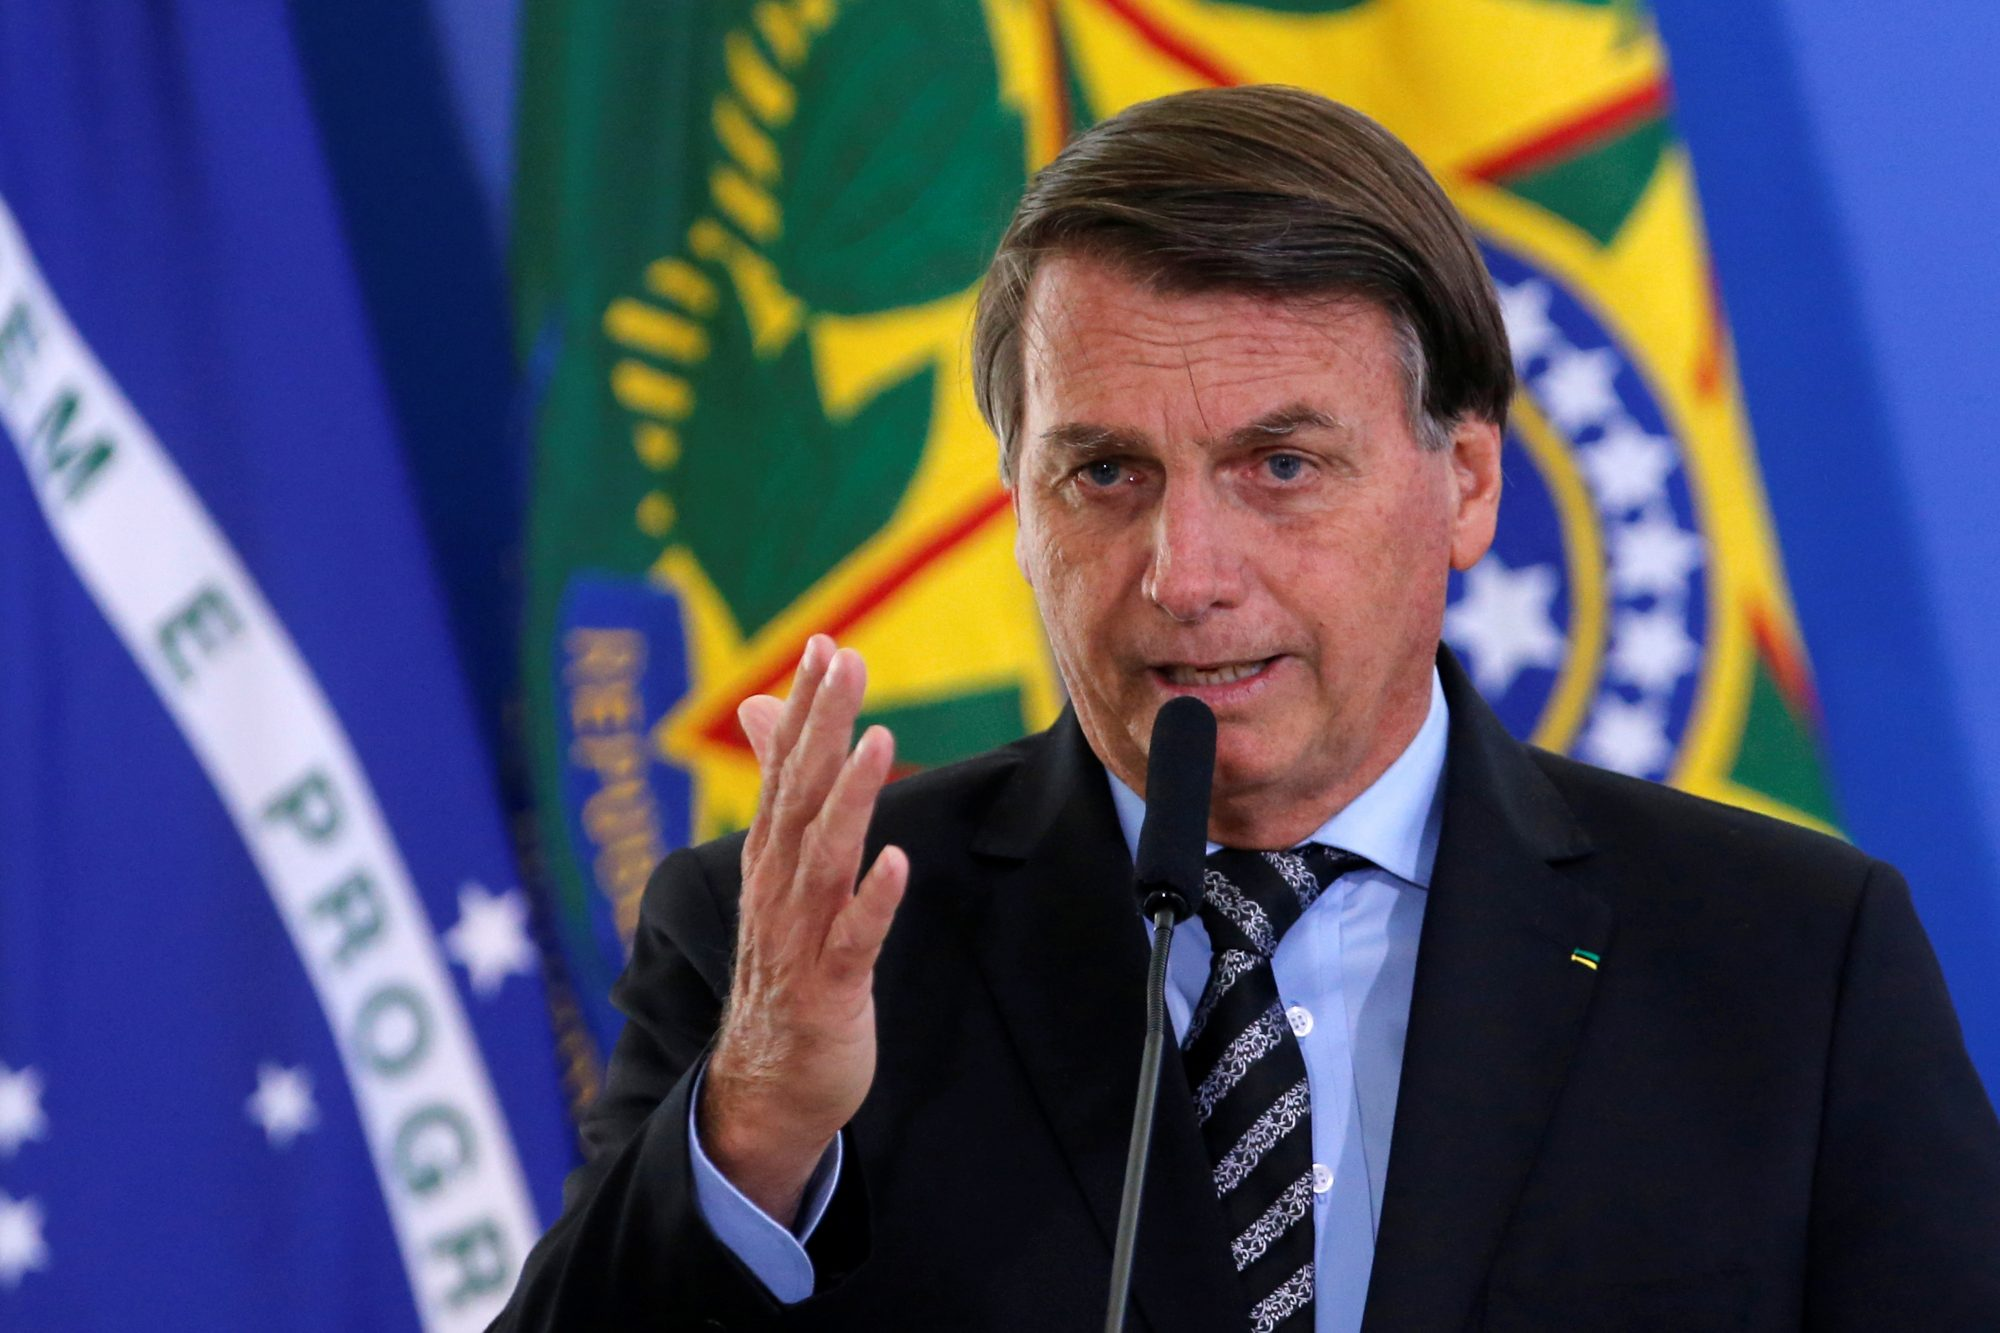 Brazilian President Bolsonaro says he will not take COVID-19 vaccine